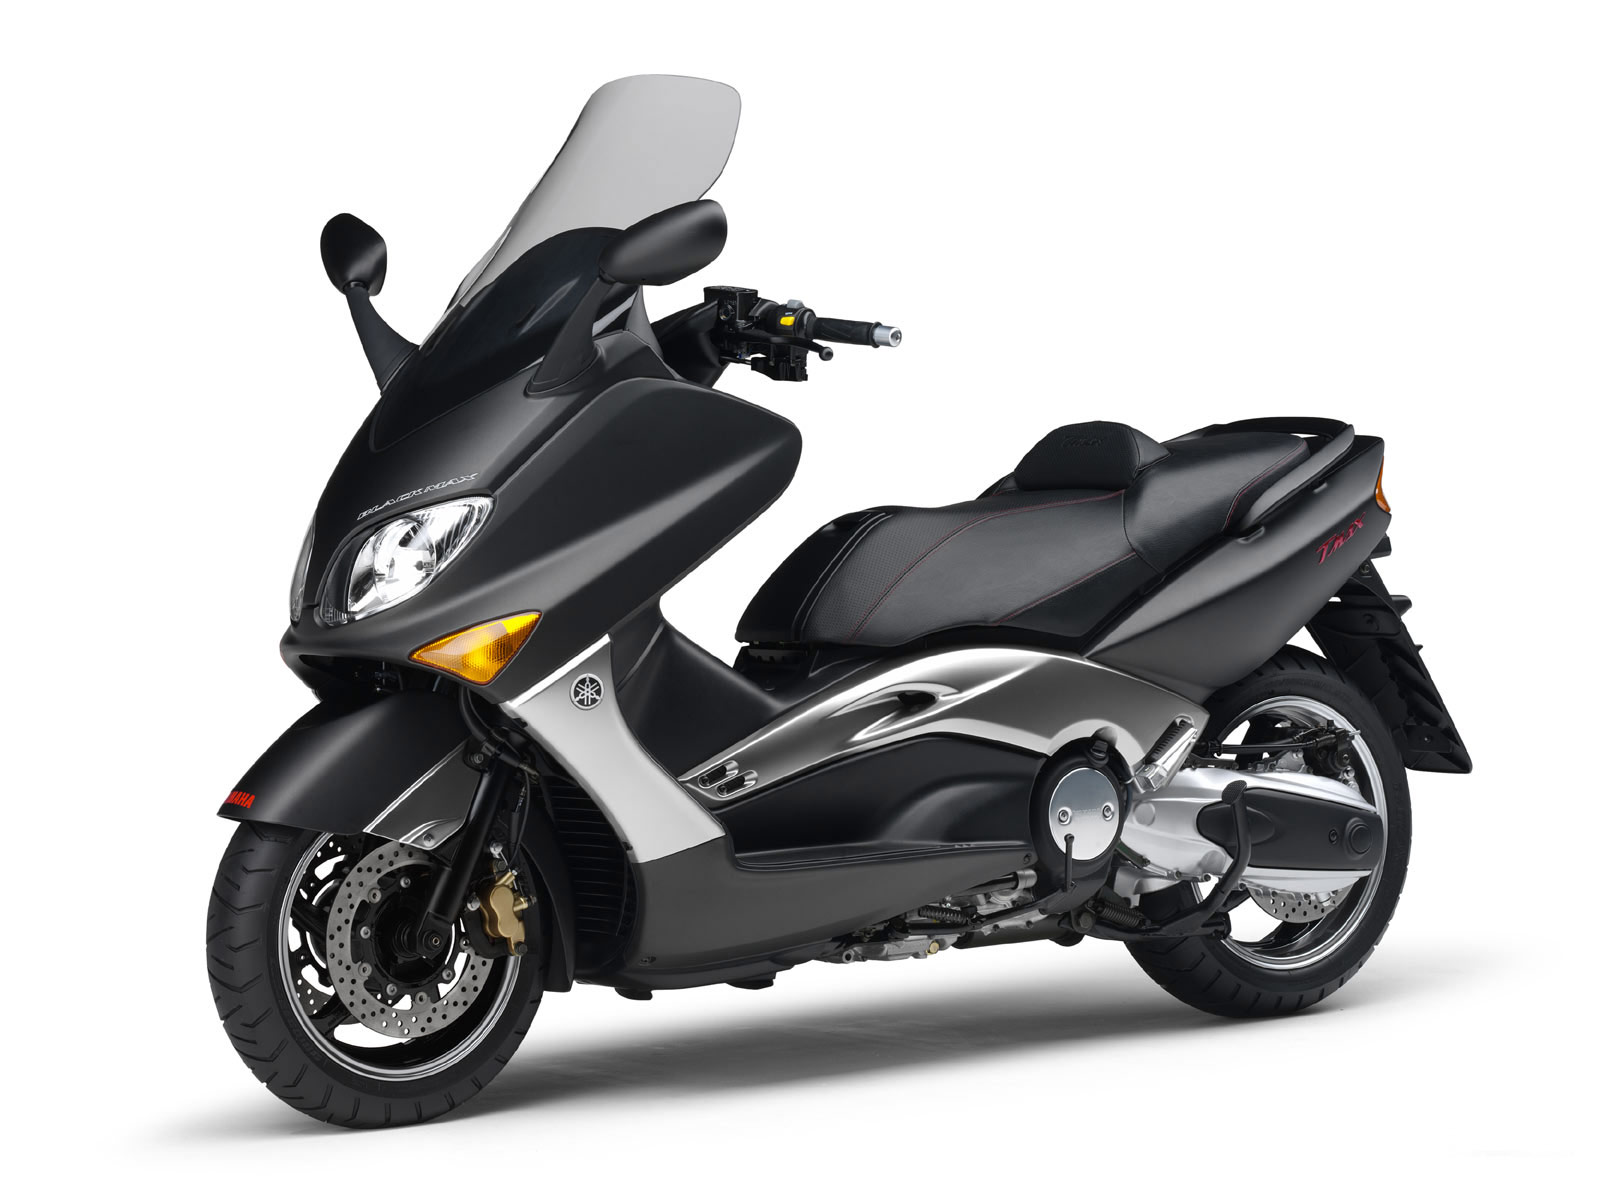 2007 YAMAHA Tmax Scooter Pictures, Review, Specifications